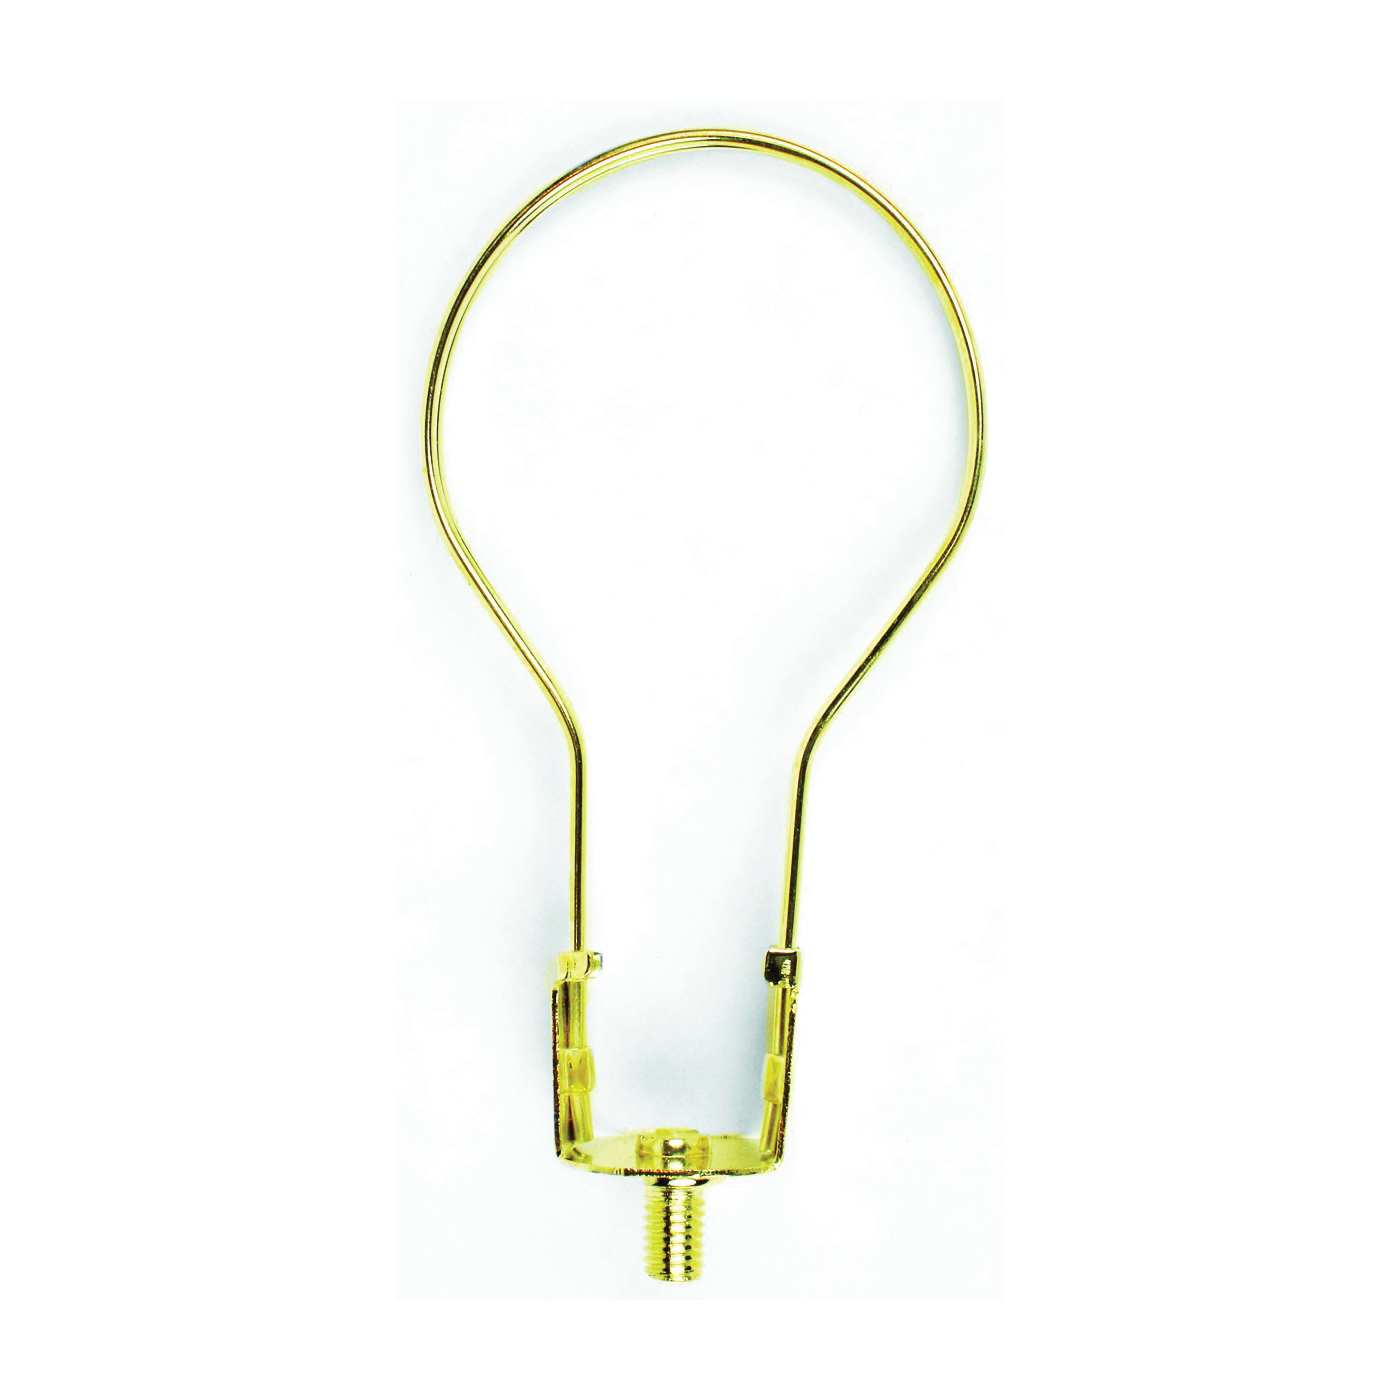 Picture of Jandorf 60120 Clip-On Lamp Shade Adapter, Brass Fixture